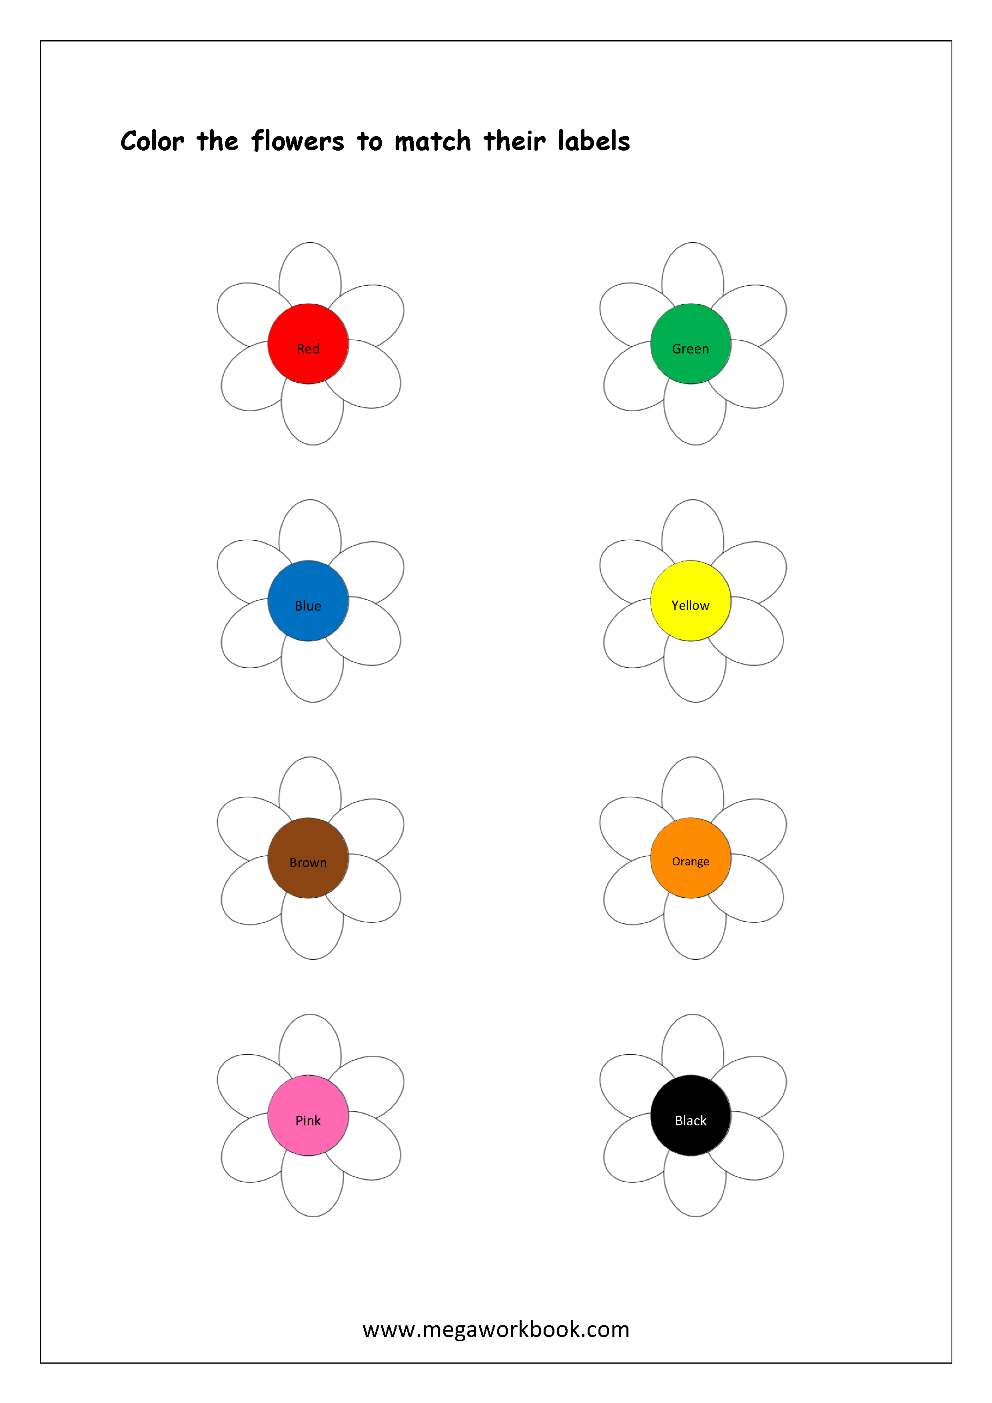 color recognition worksheet color the objects using matching color flowers free printable. Black Bedroom Furniture Sets. Home Design Ideas